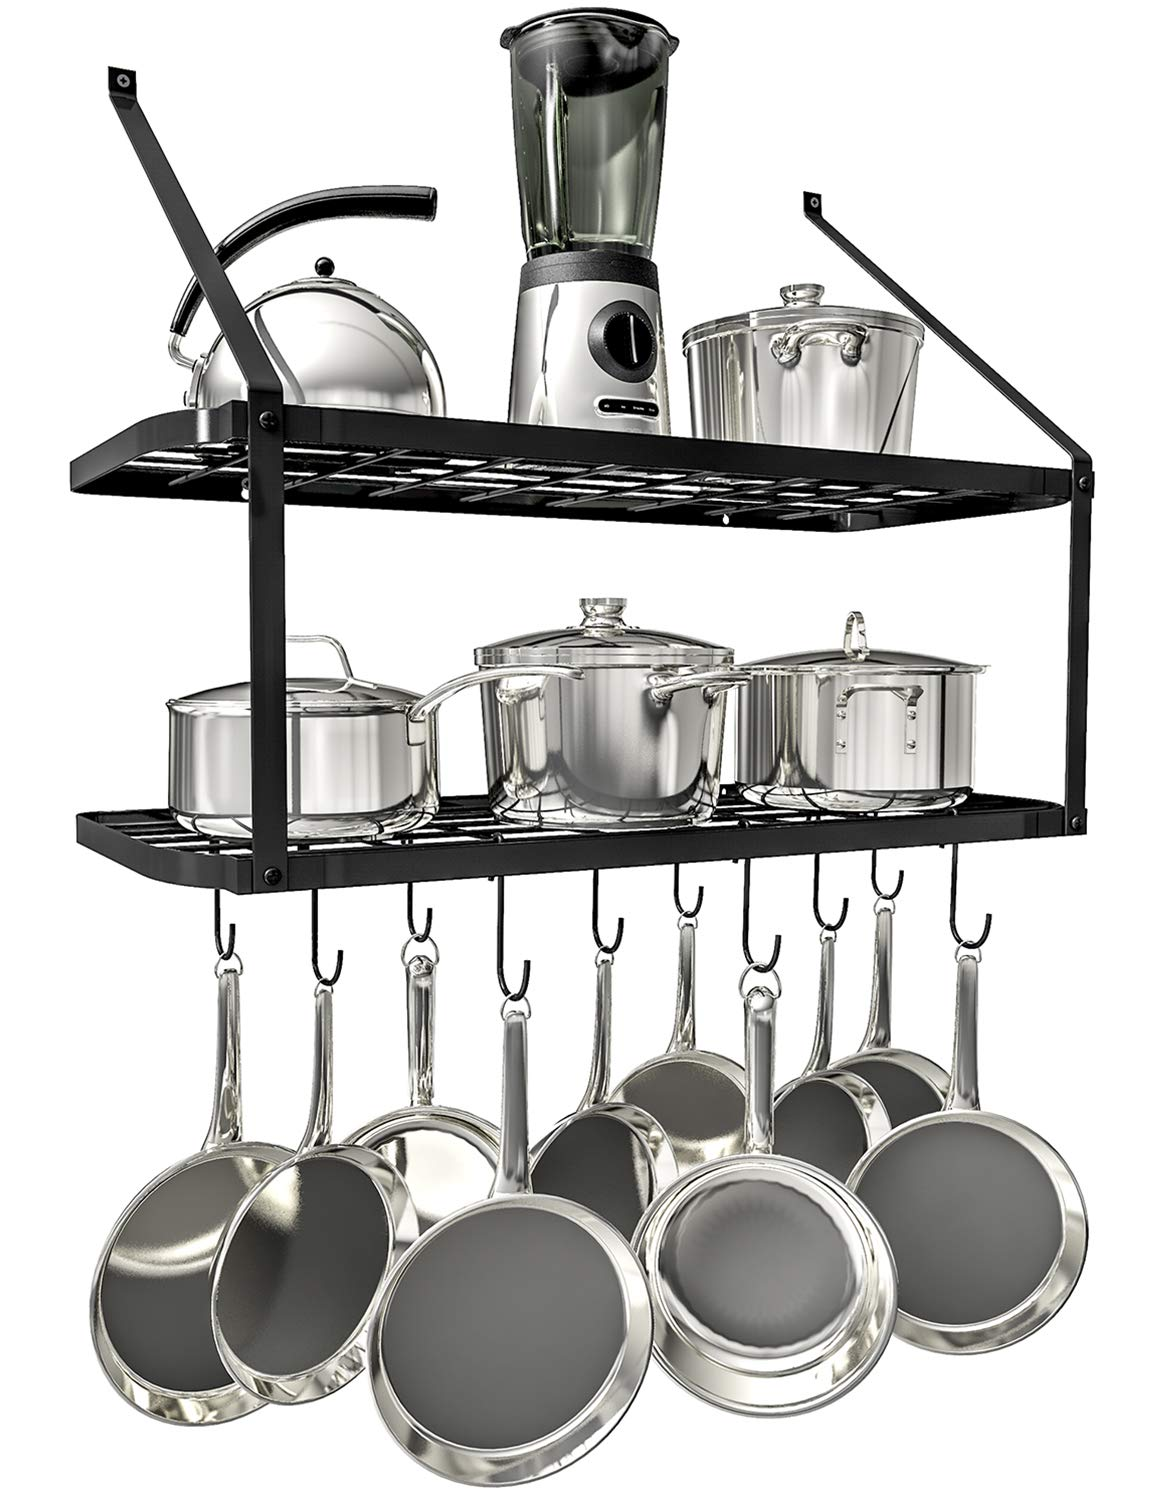 Kitchen Cookware Hanging Organizer with 15 Hooks,29.3 by13-inch Vdomus Square Grid Wall Mount Pot Rack Silver